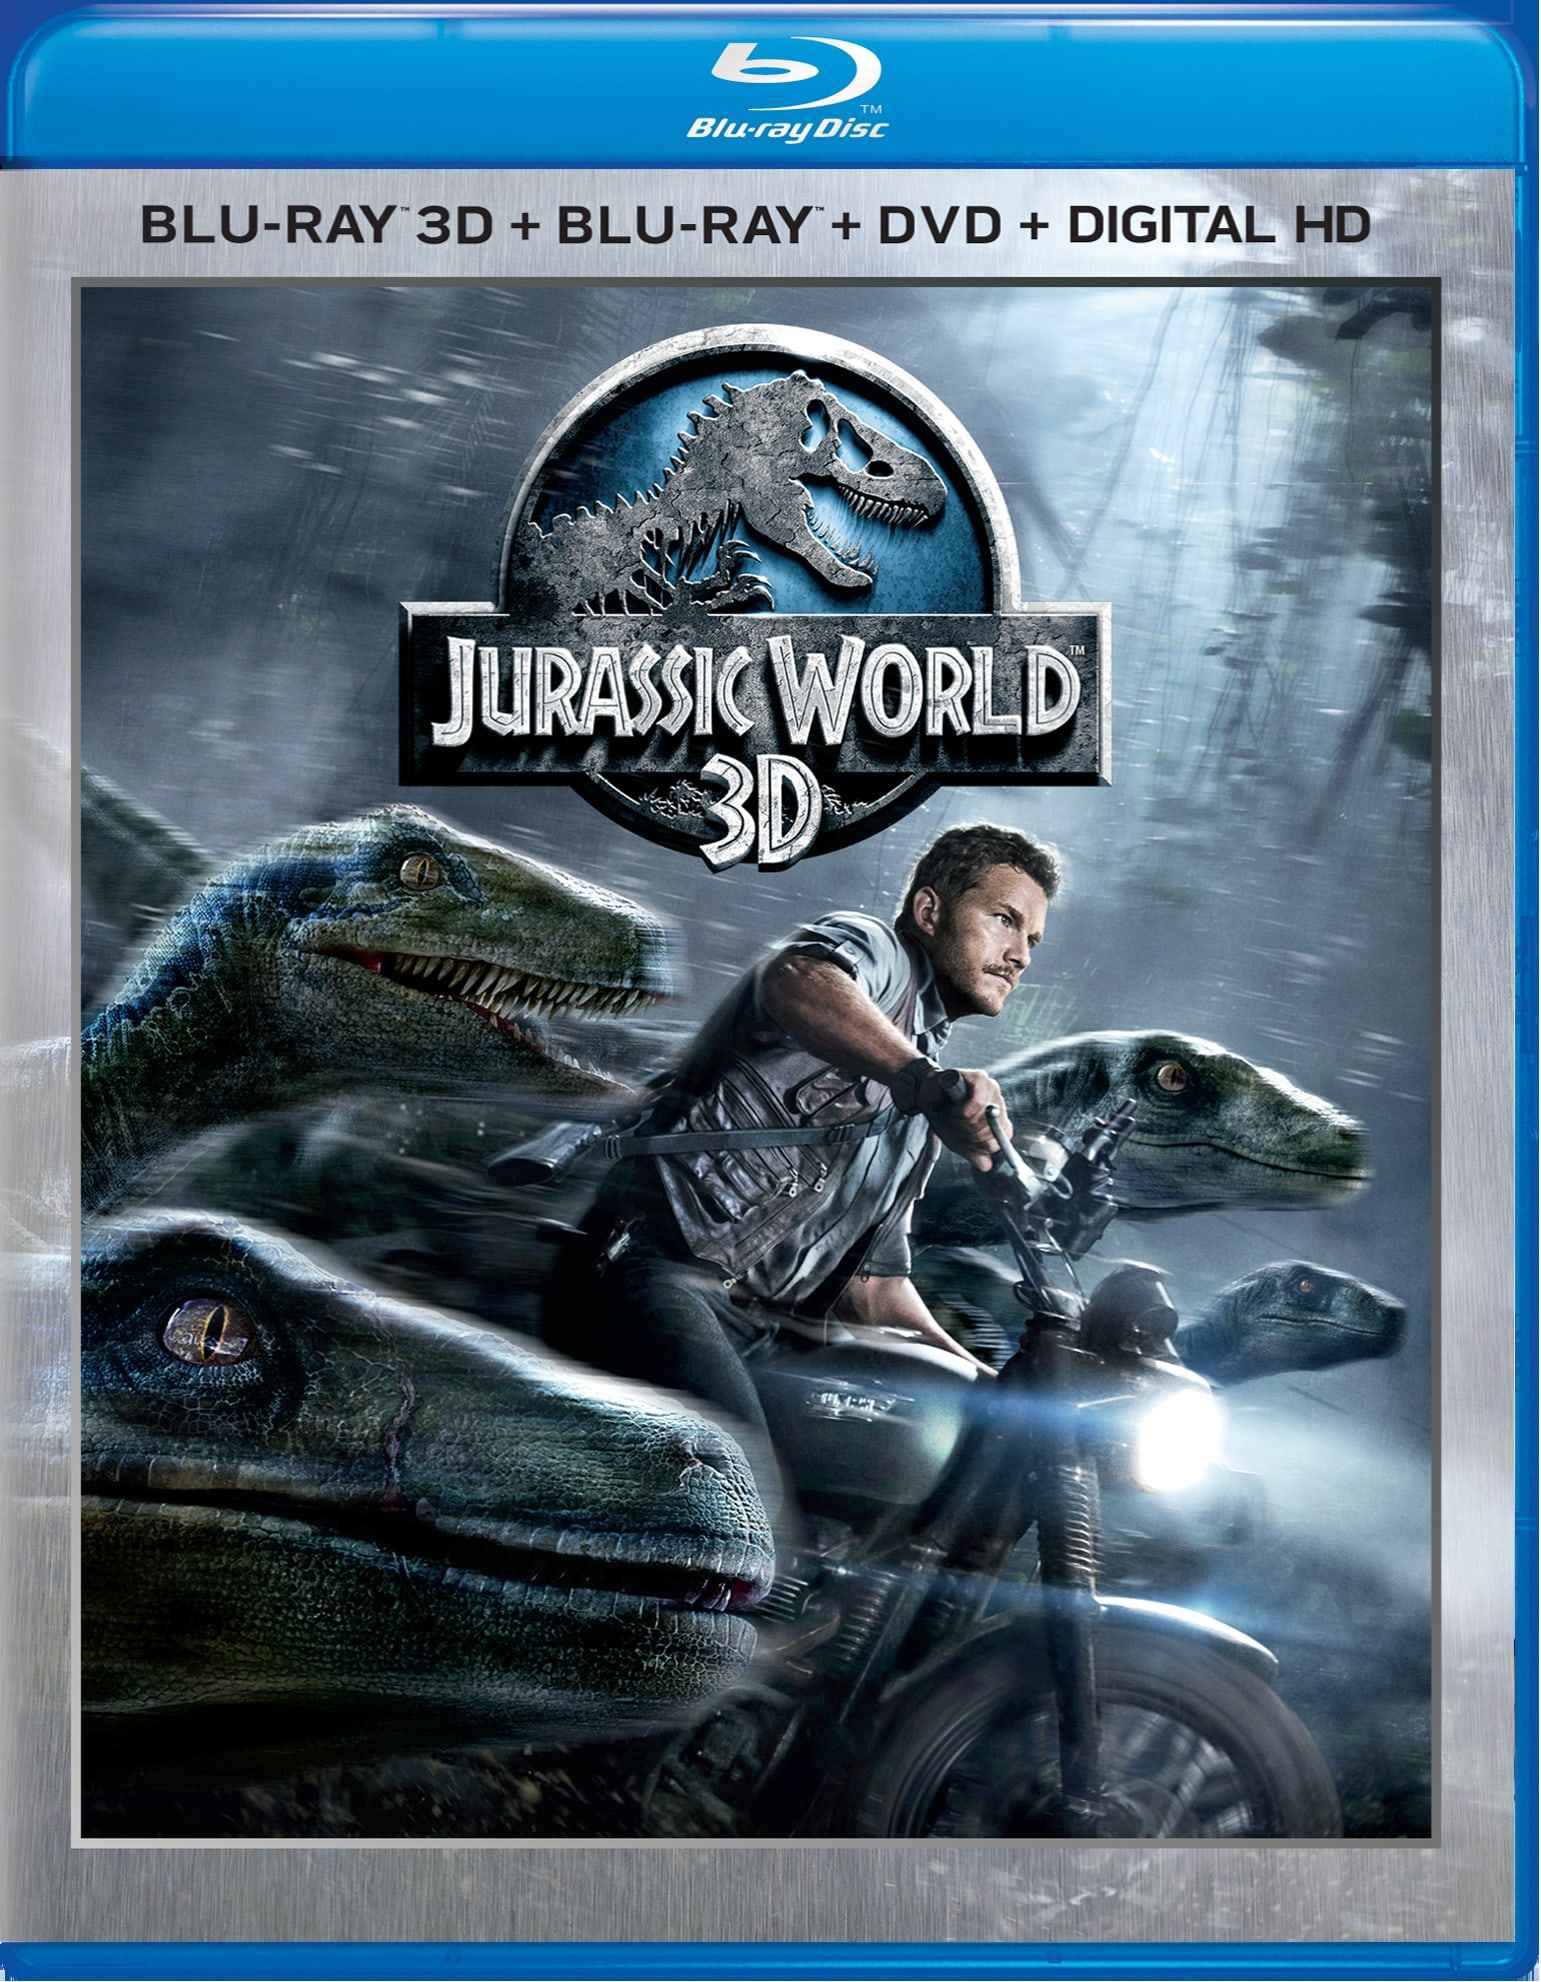 Jurassic World 3D (DVD + Digital) [Blu-ray]